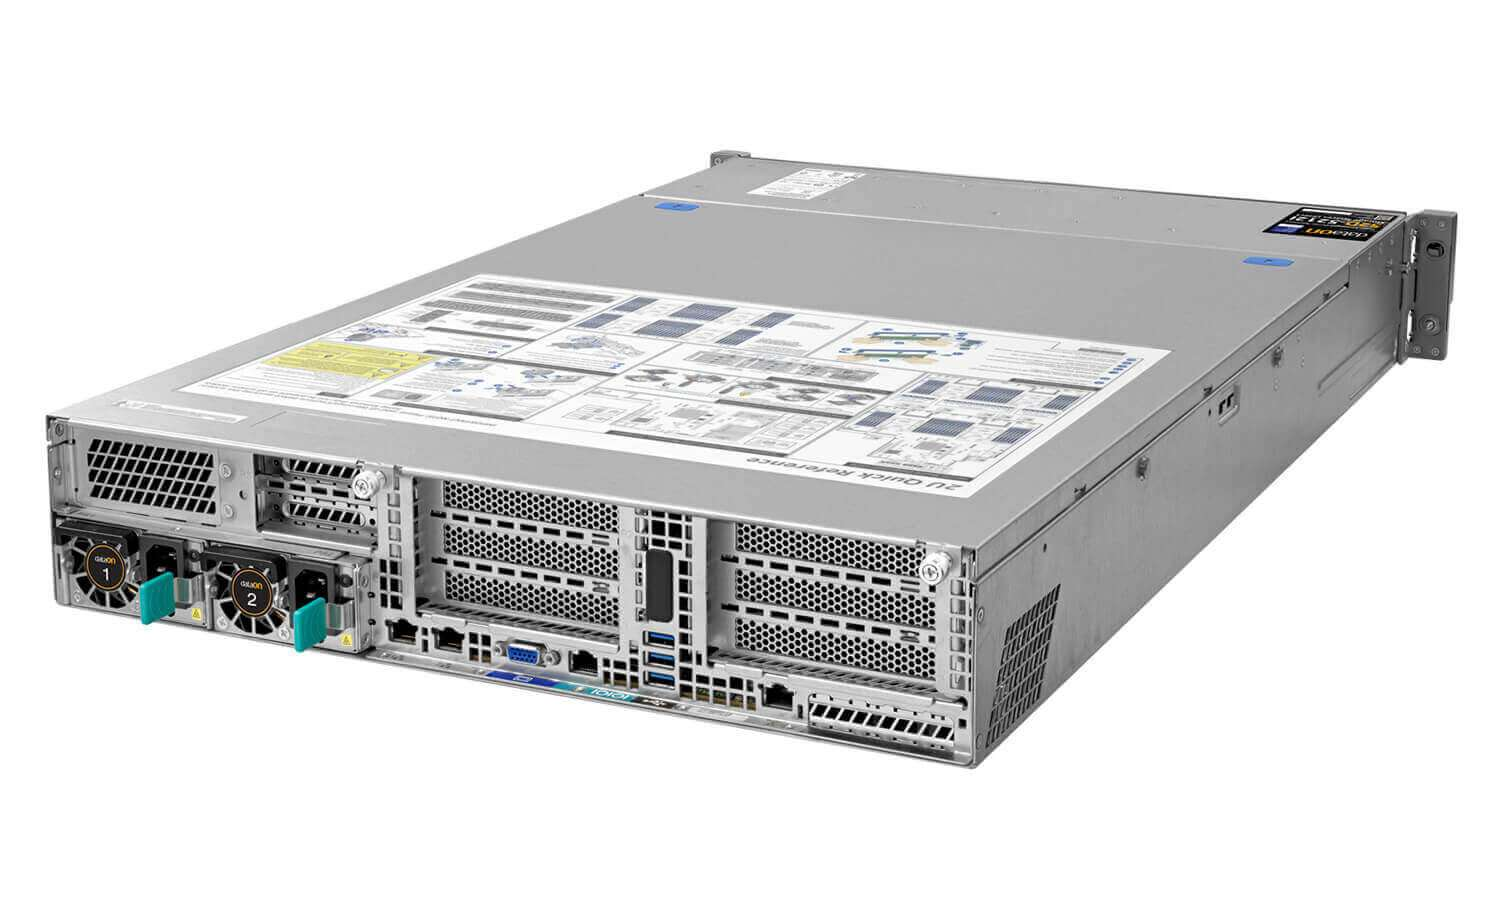 allsystems-producten-hyperconverged-systems-DataON_S2D-5212i_Rear_Side_View